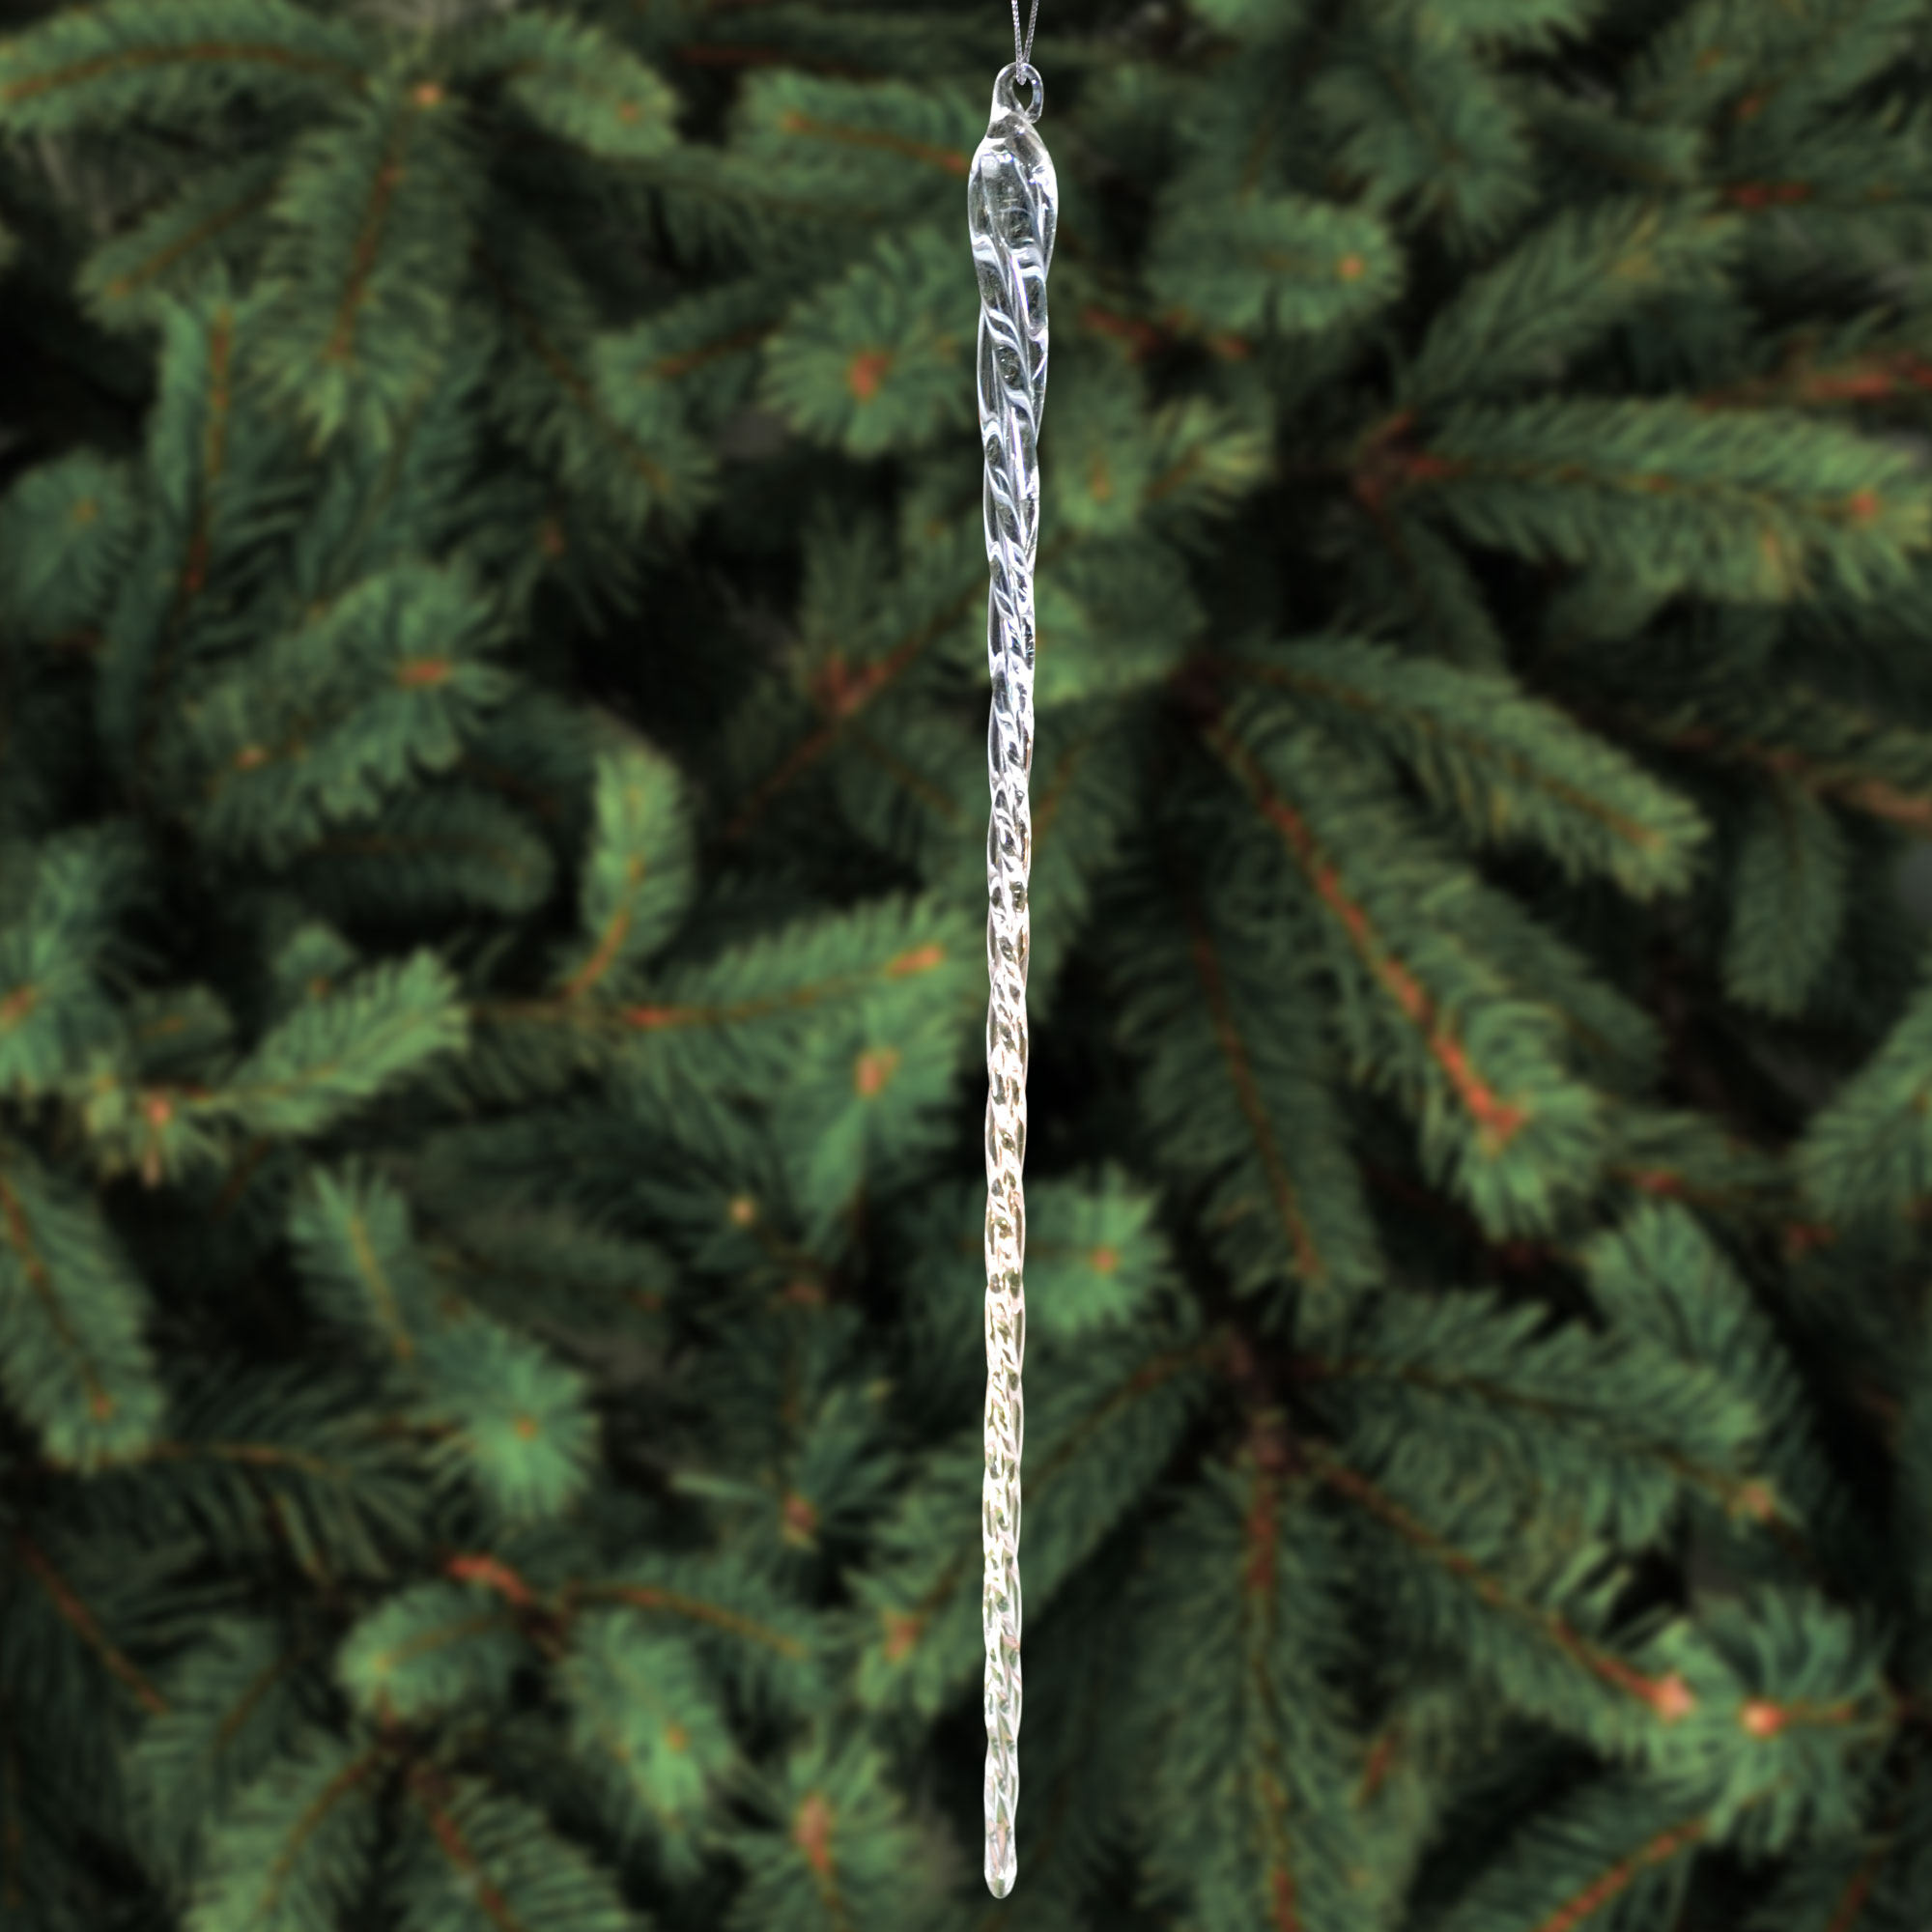 Christmas Decorations Icicle Ornaments: 14 Inch Clear Glass Icicle Ornaments Christmas Tree